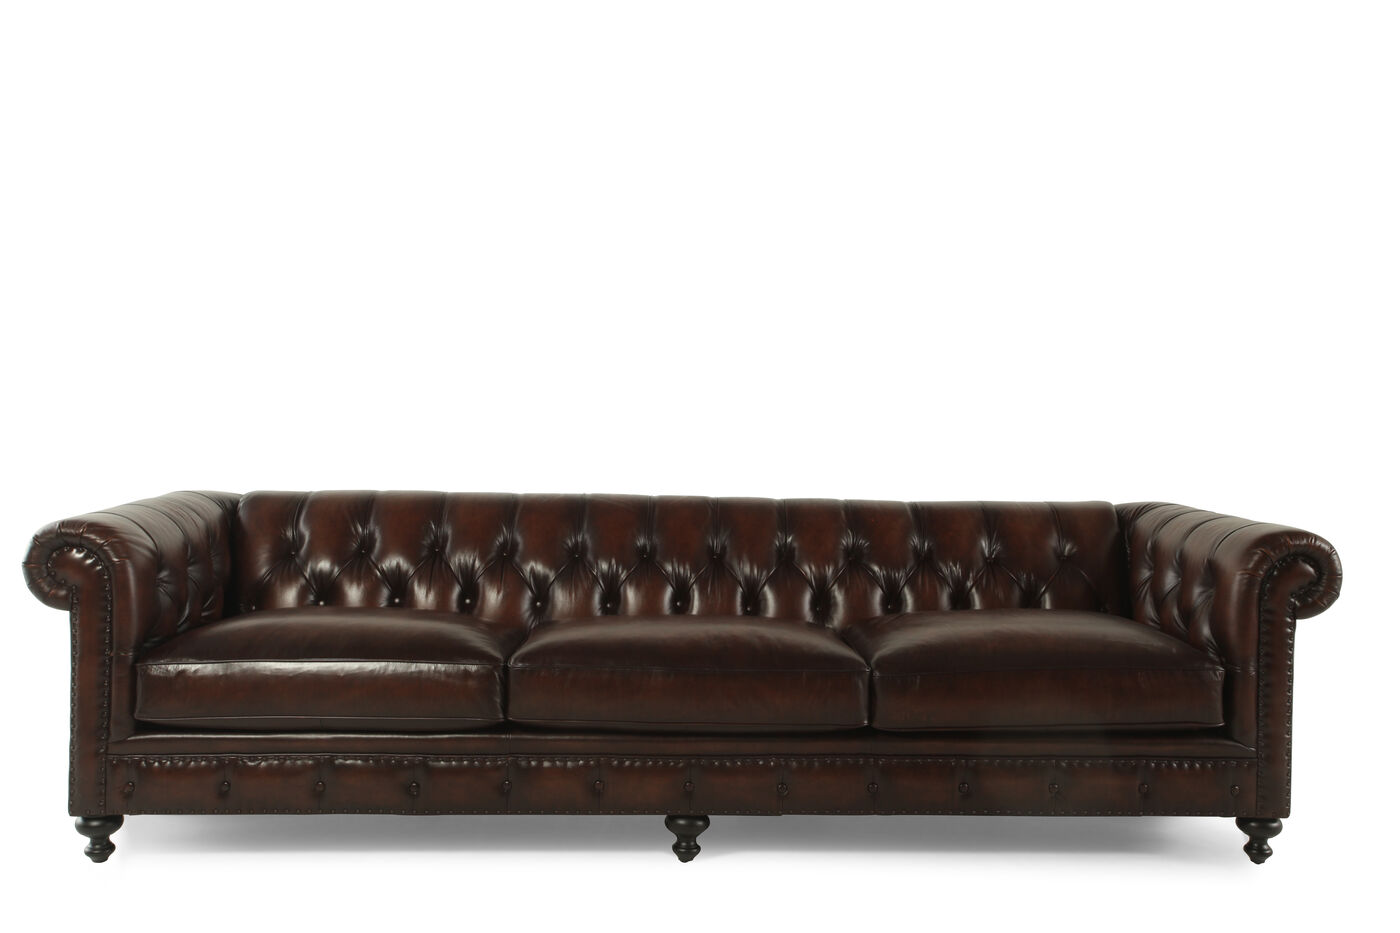 Button tufted leather 116 5 sofa in molasses mathis for Where to buy bernhardt furniture online